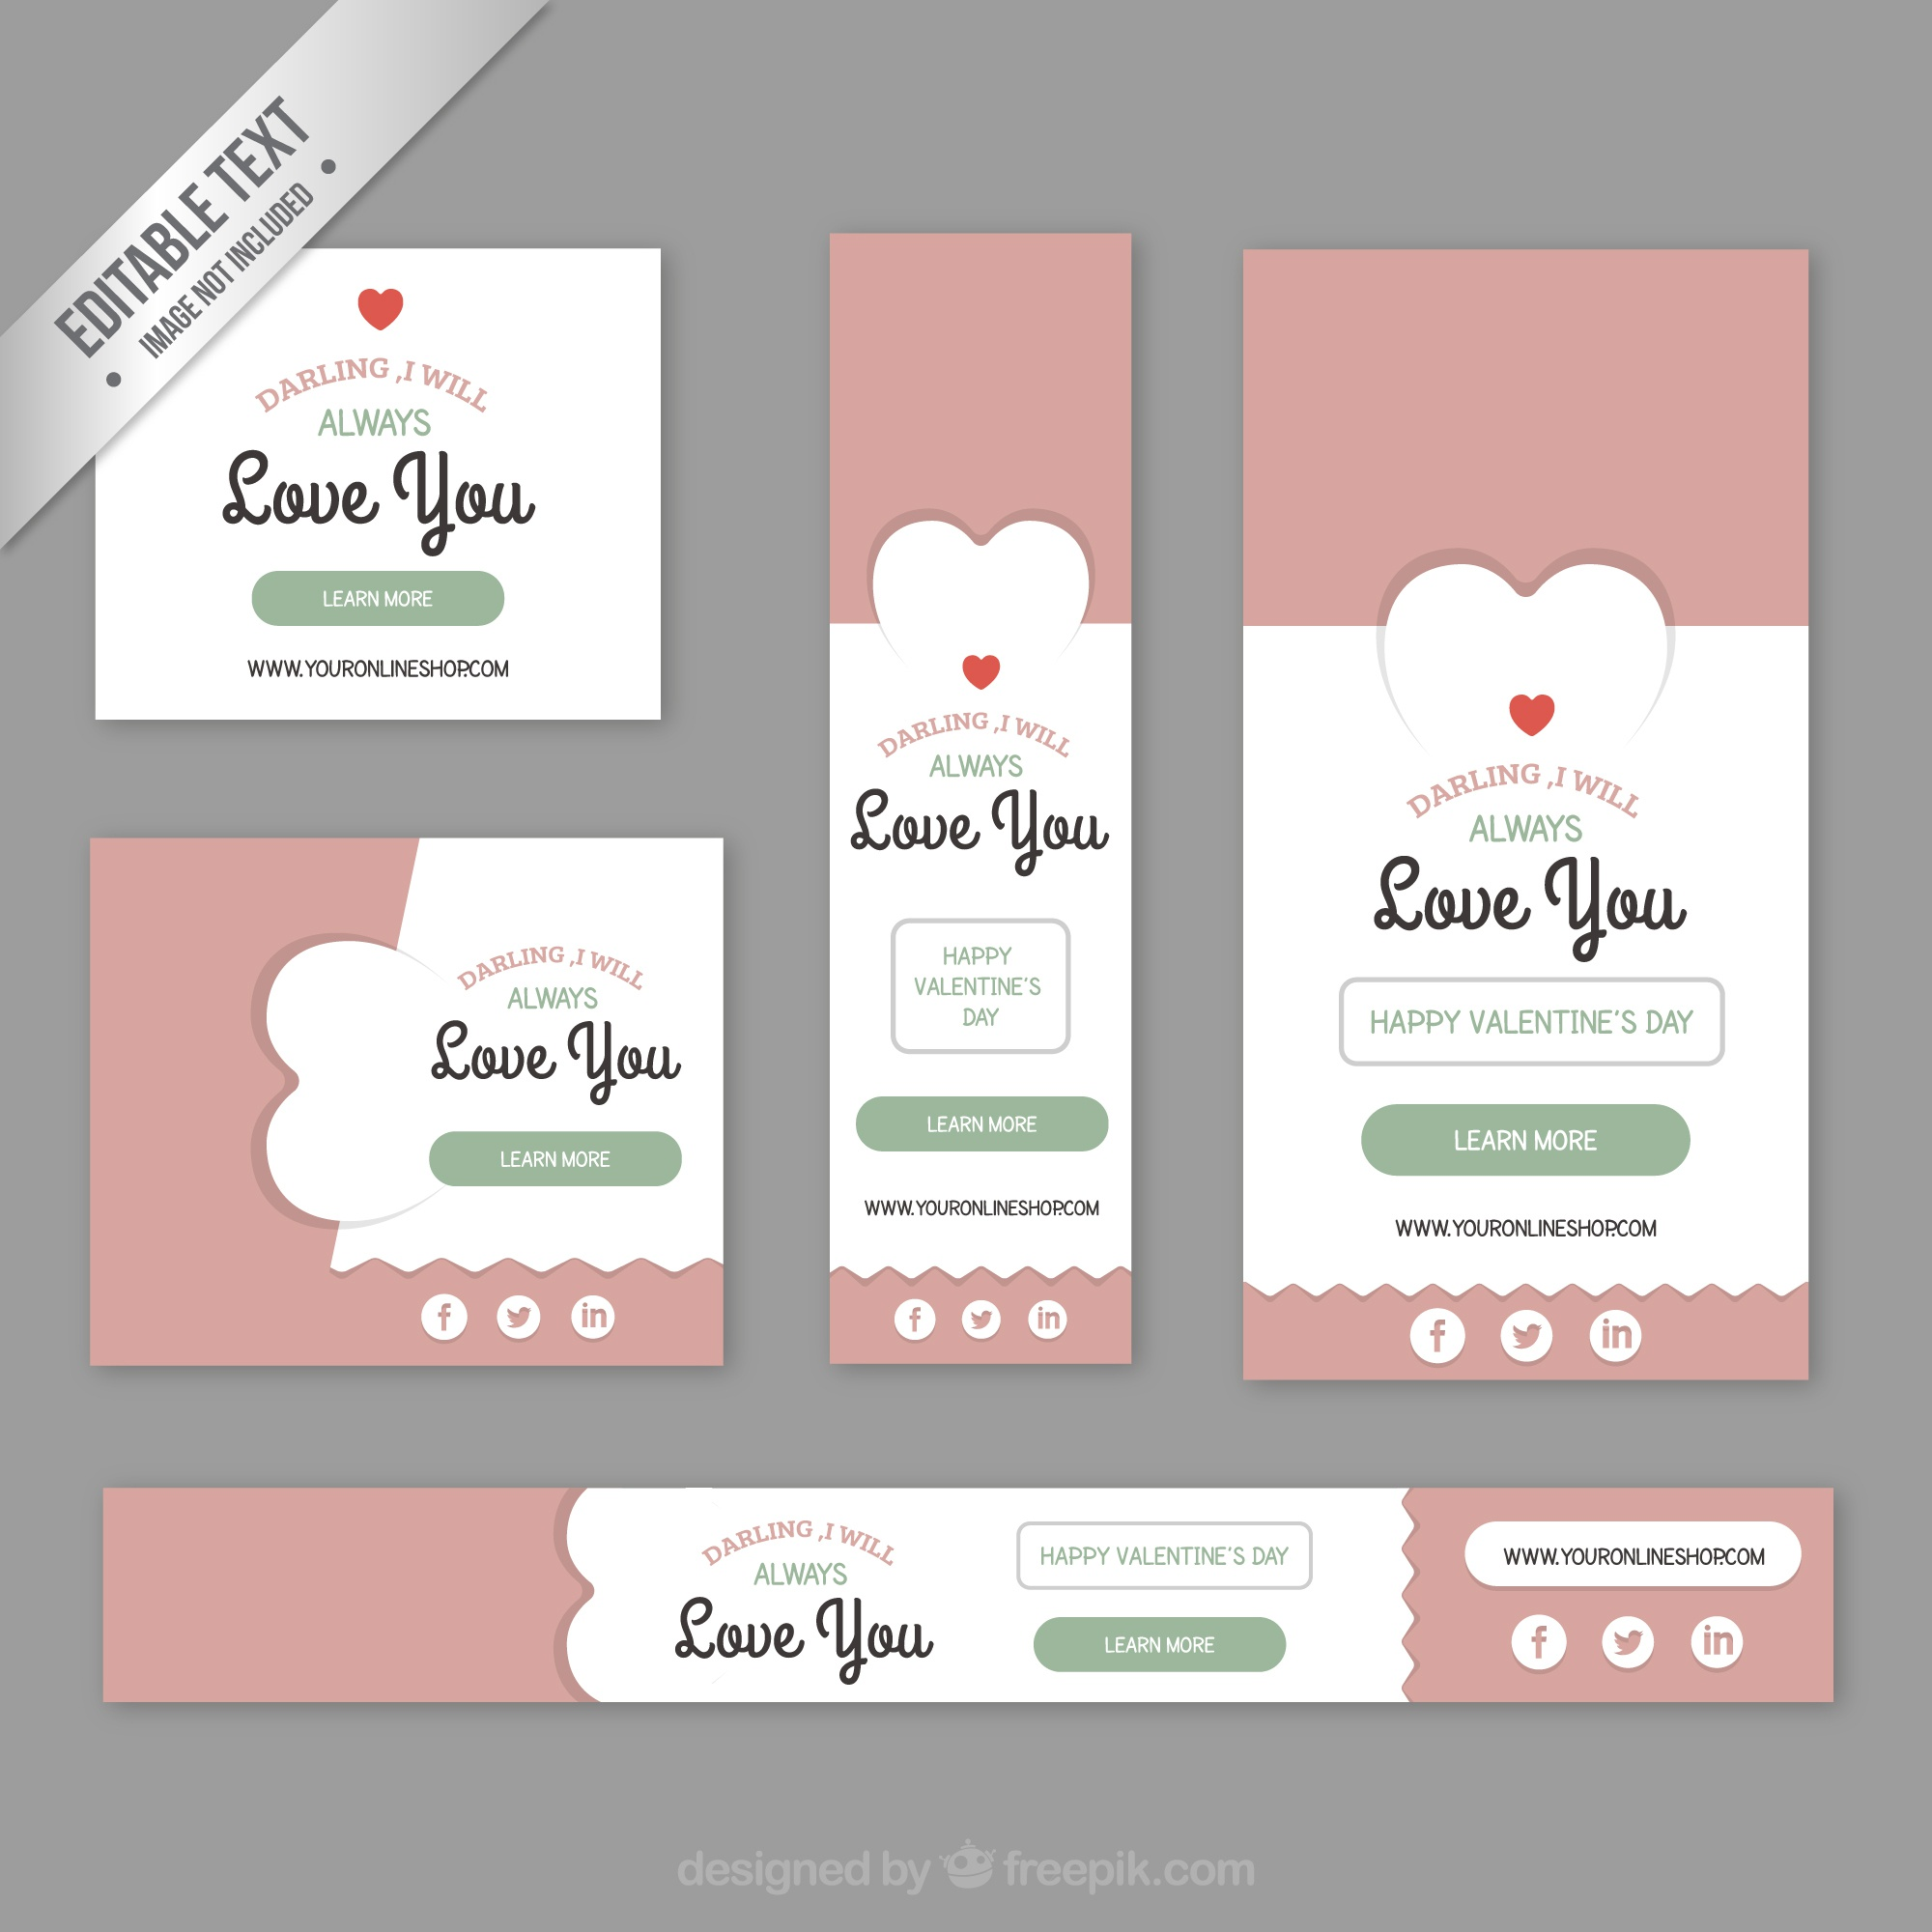 Cute valentine banners pack